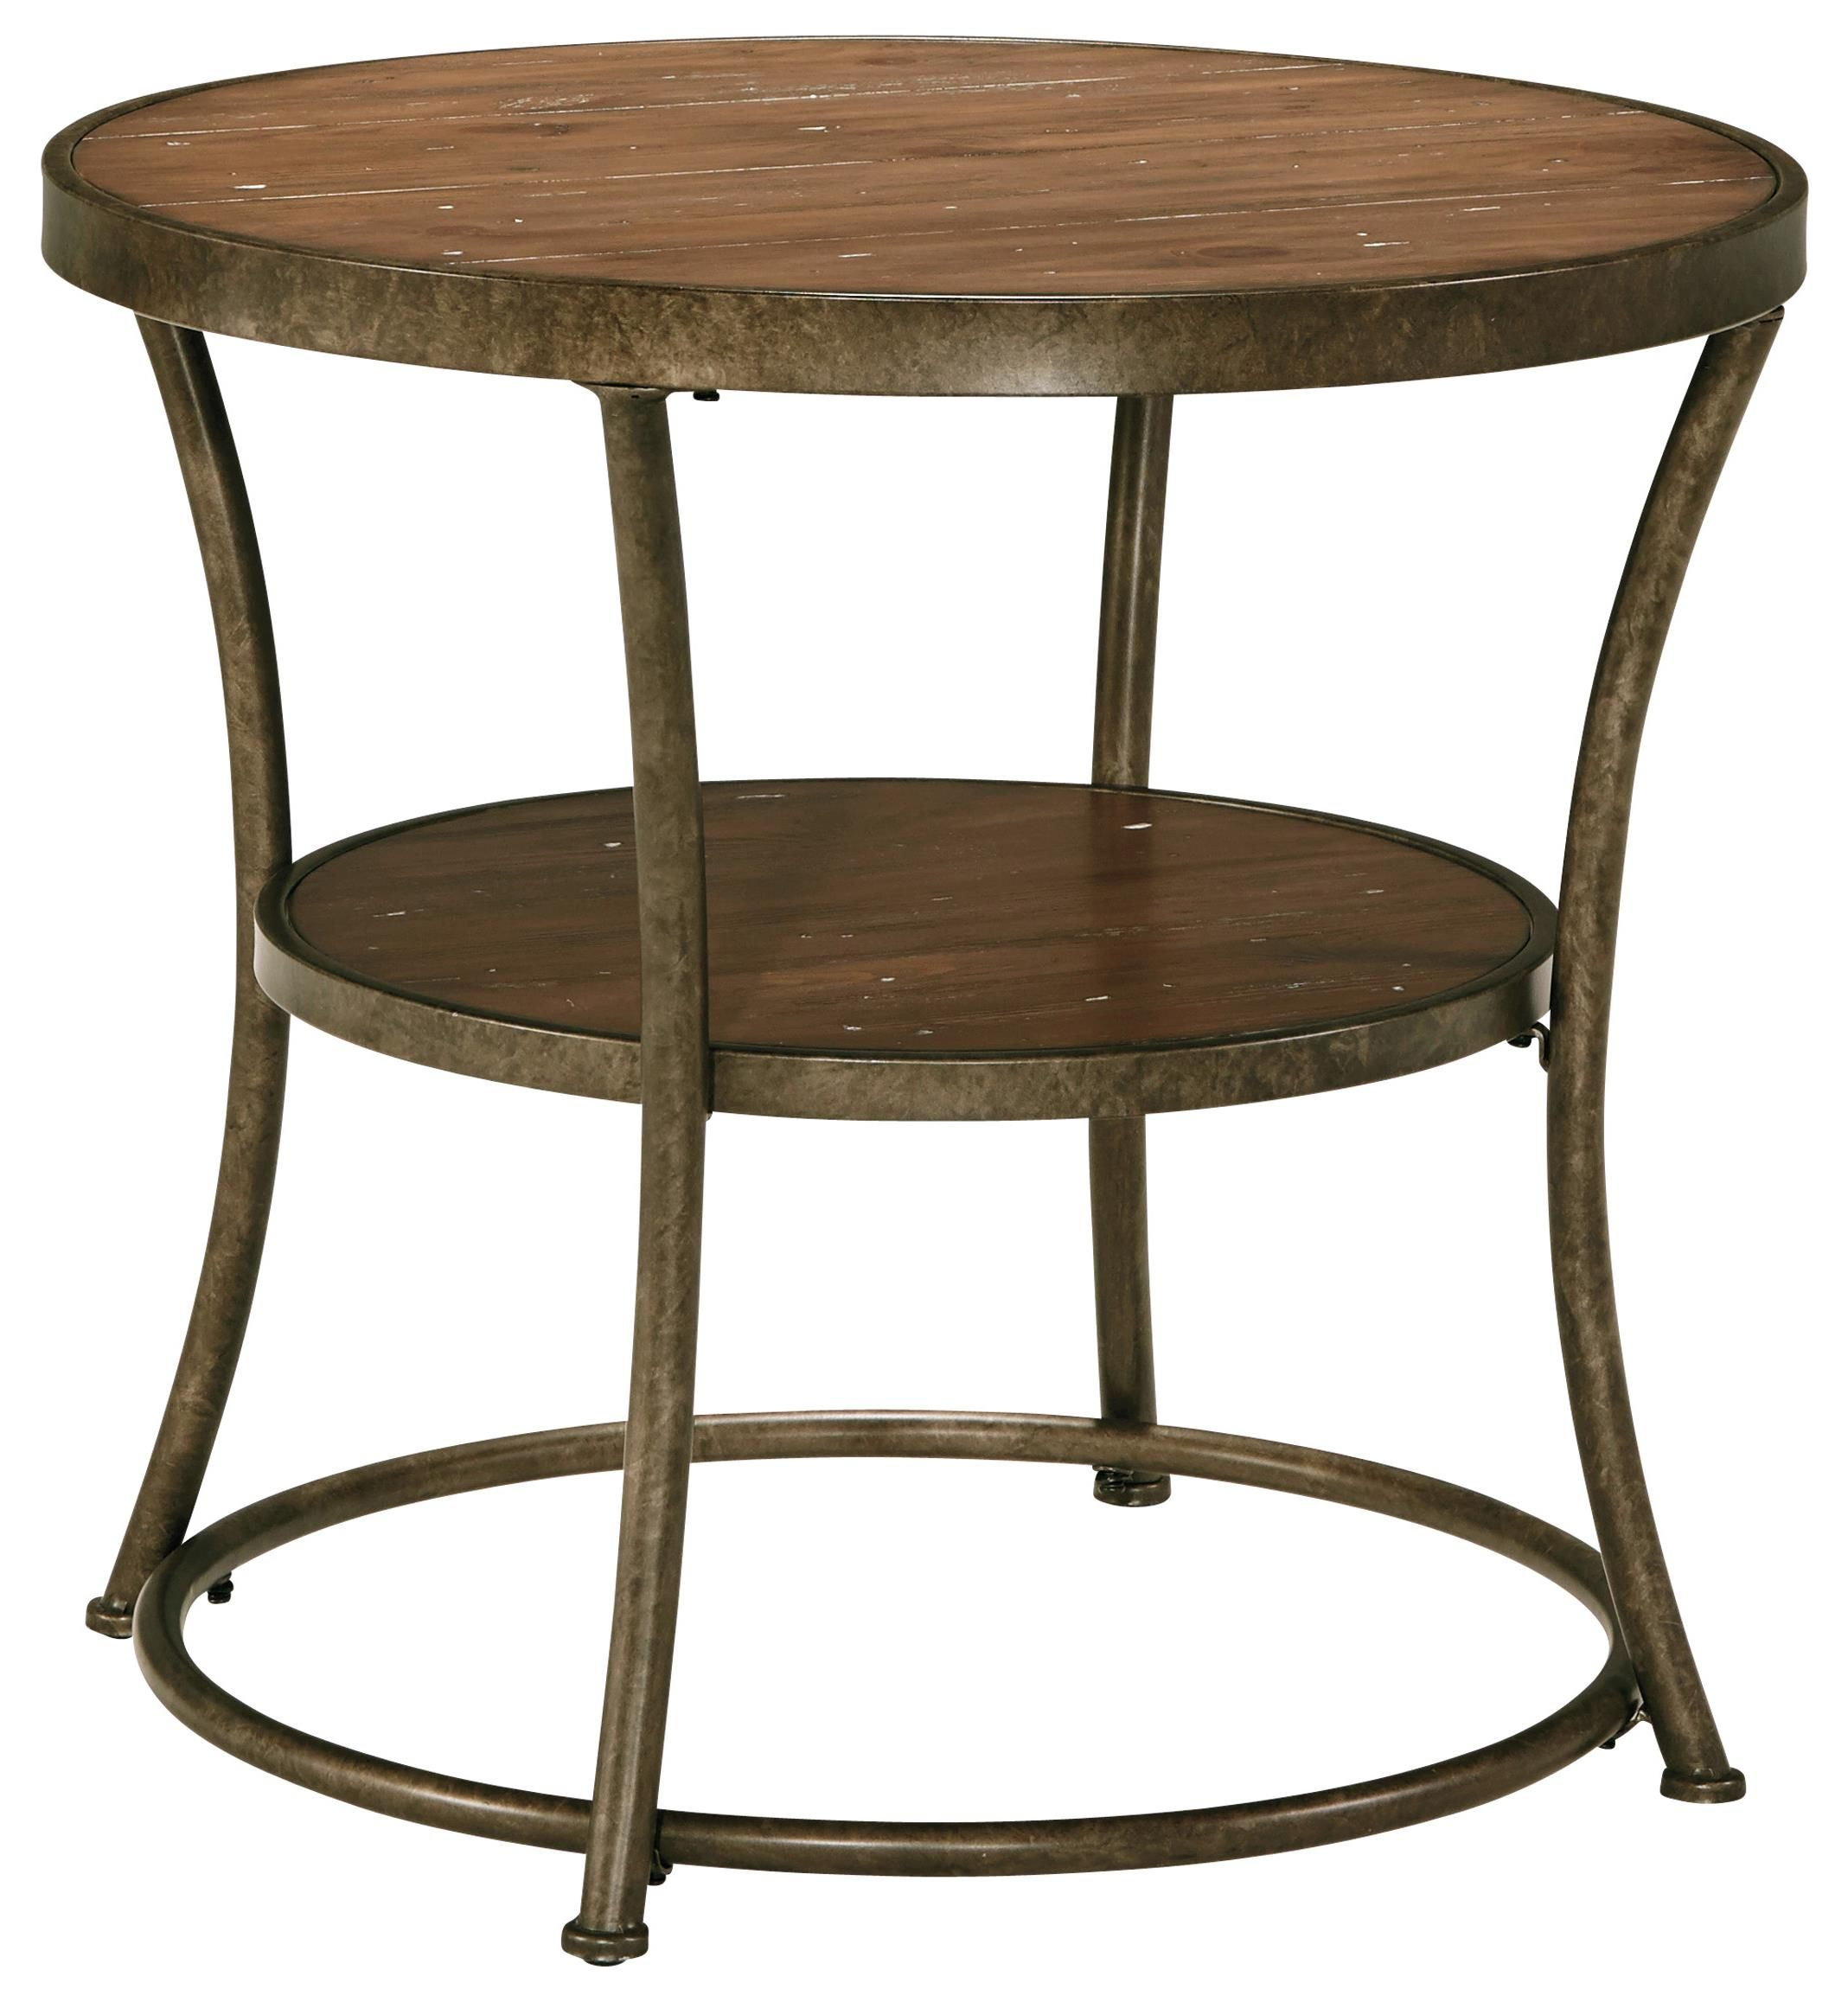 The Shaped Bronze Color Shaped Tubular Metal Frame Gives This Round End Table A Retro Flair That Will Ma End Tables Affordable Farmhouse Decor Ashley Furniture